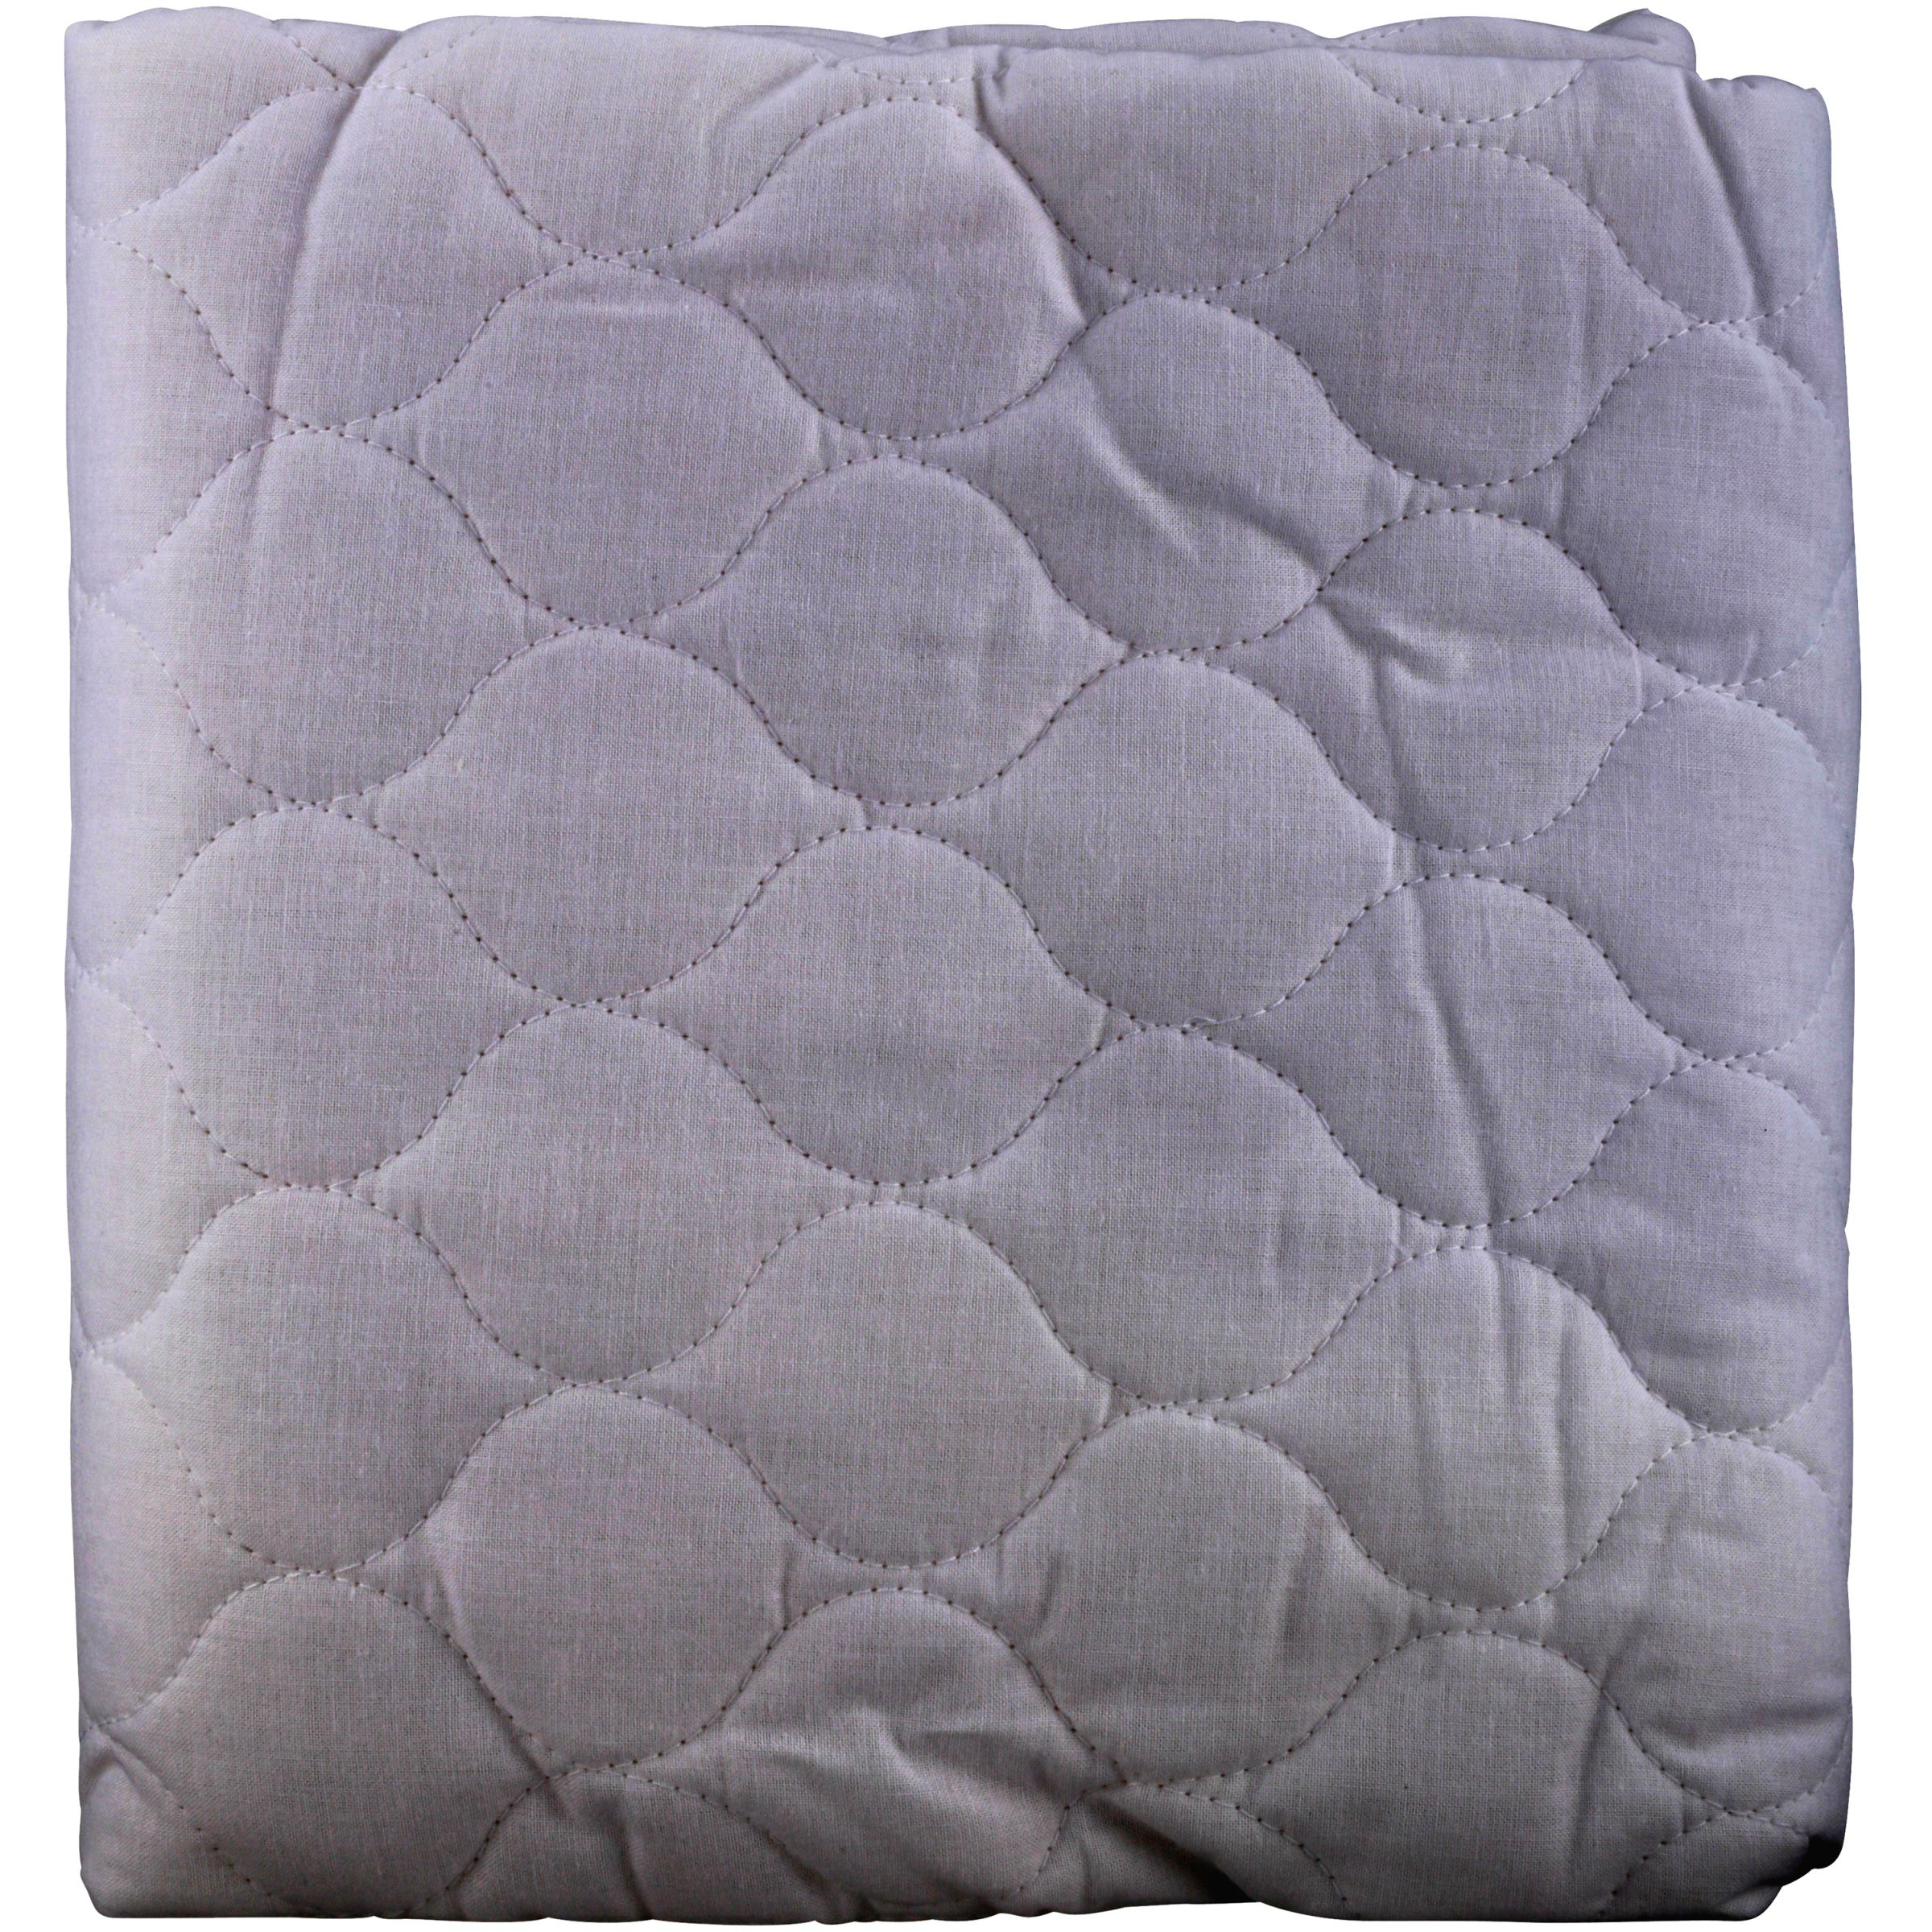 TL Care® Waterproof Quilted Mattress Pad Cover